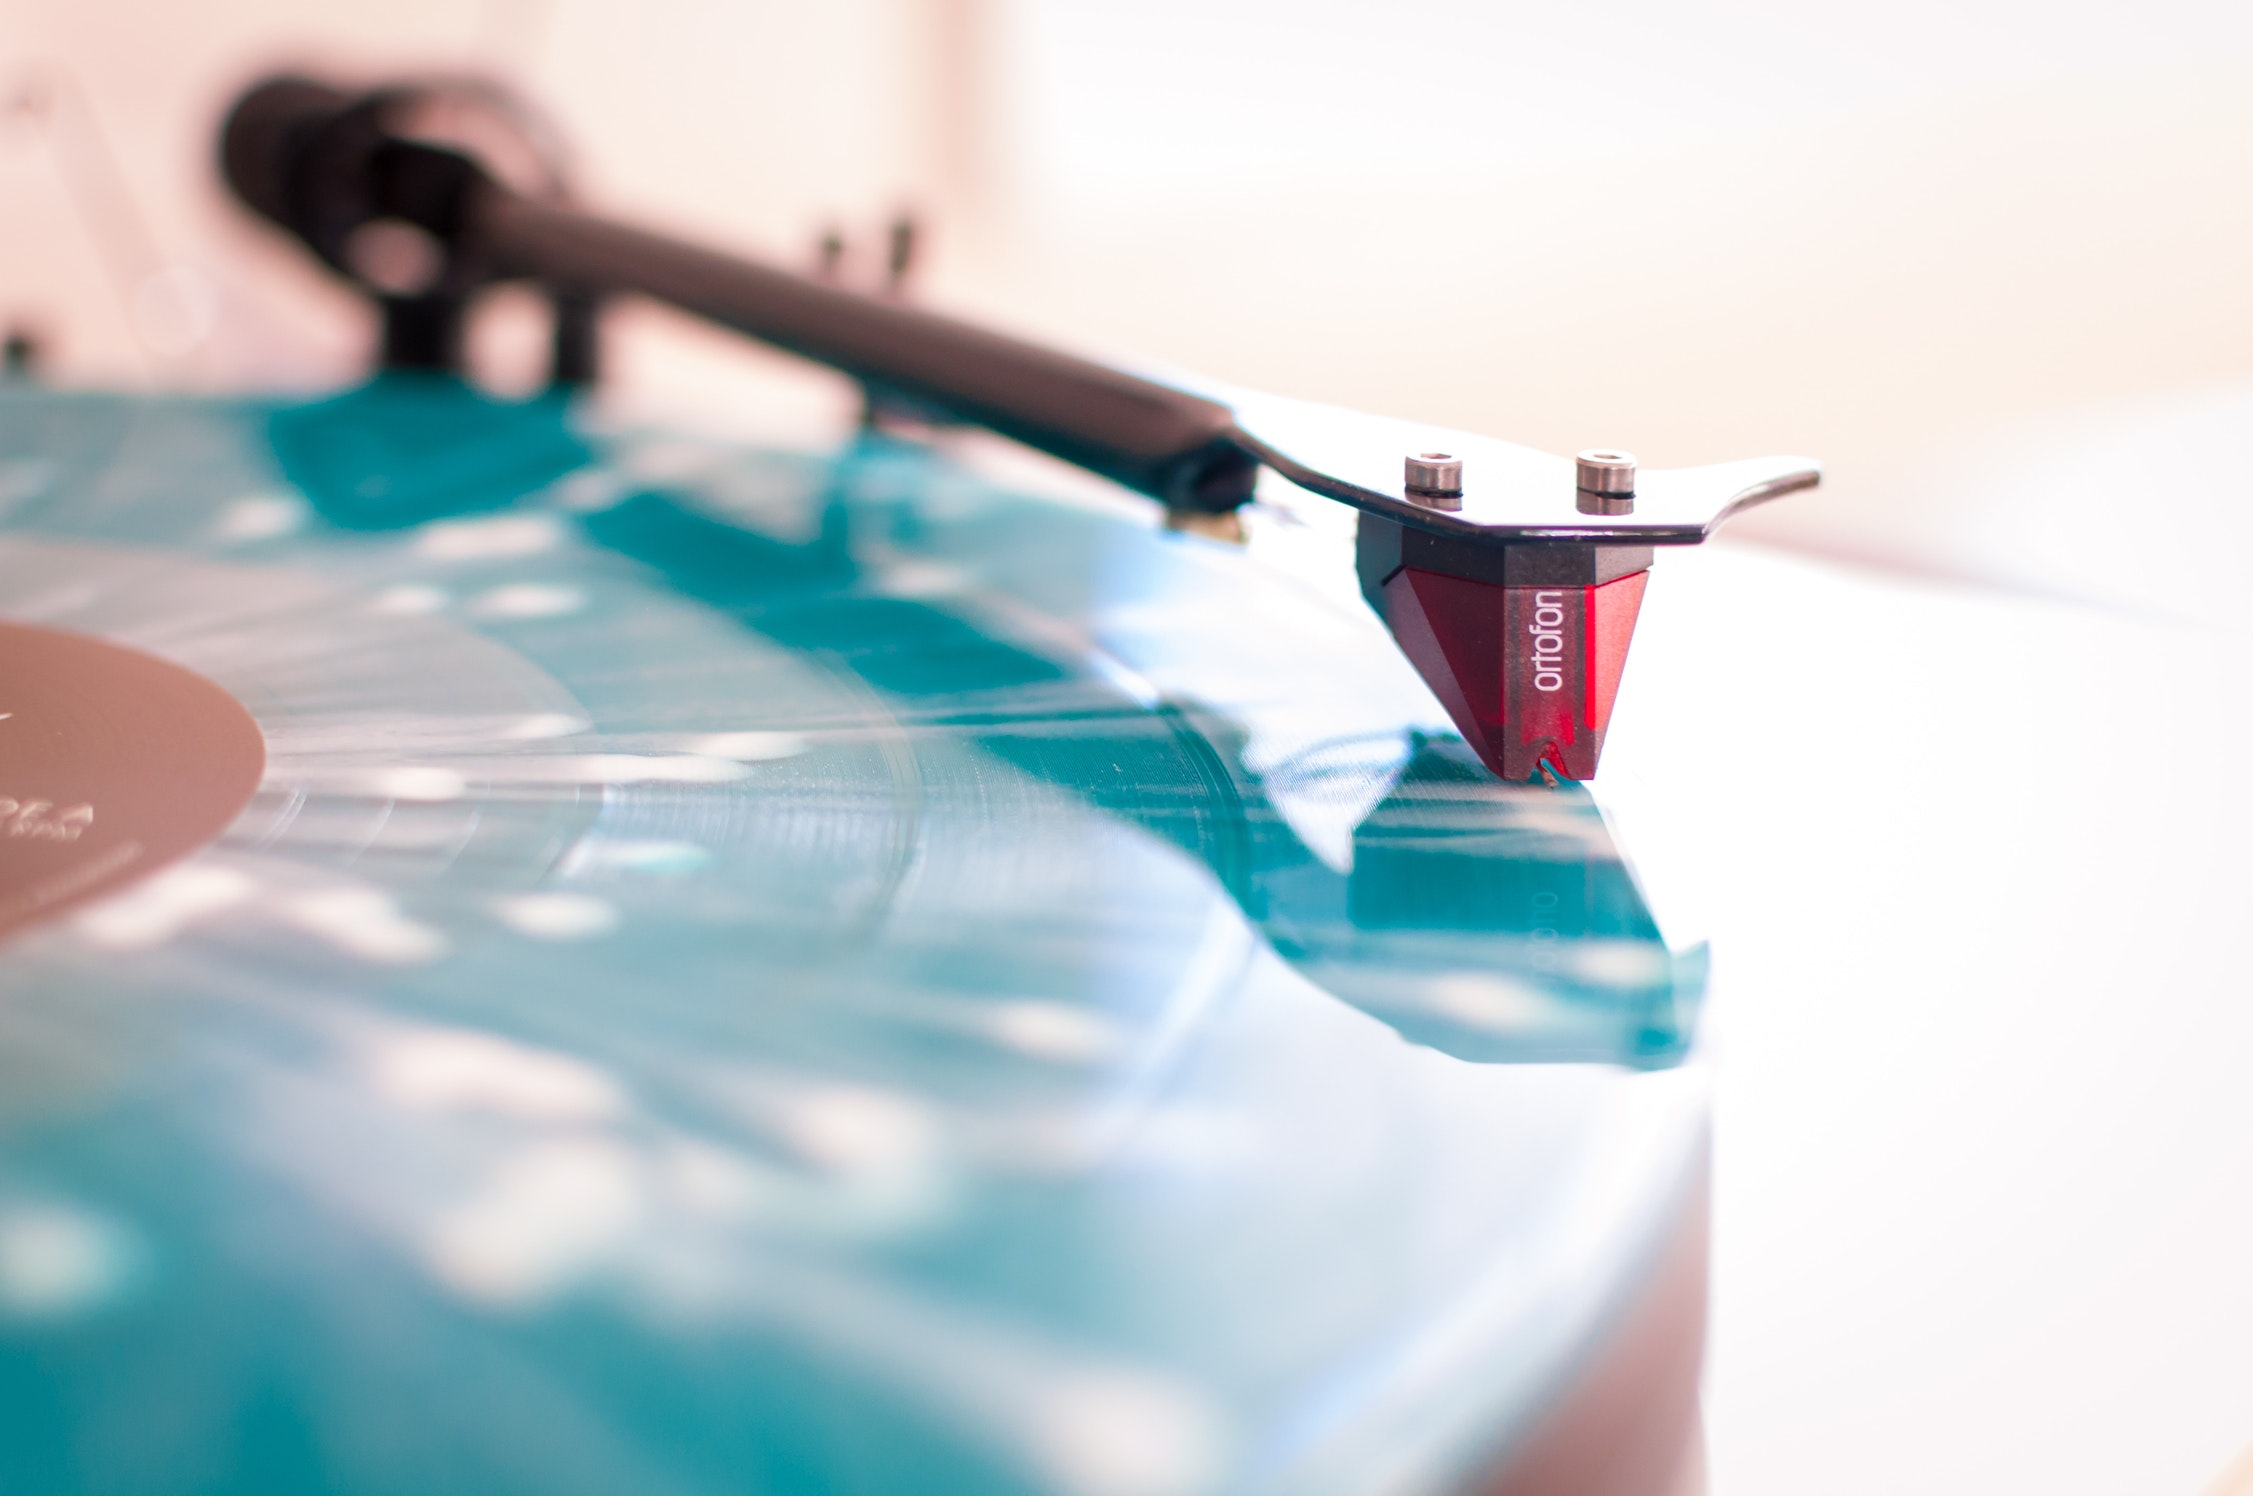 1000 usd turntables to have